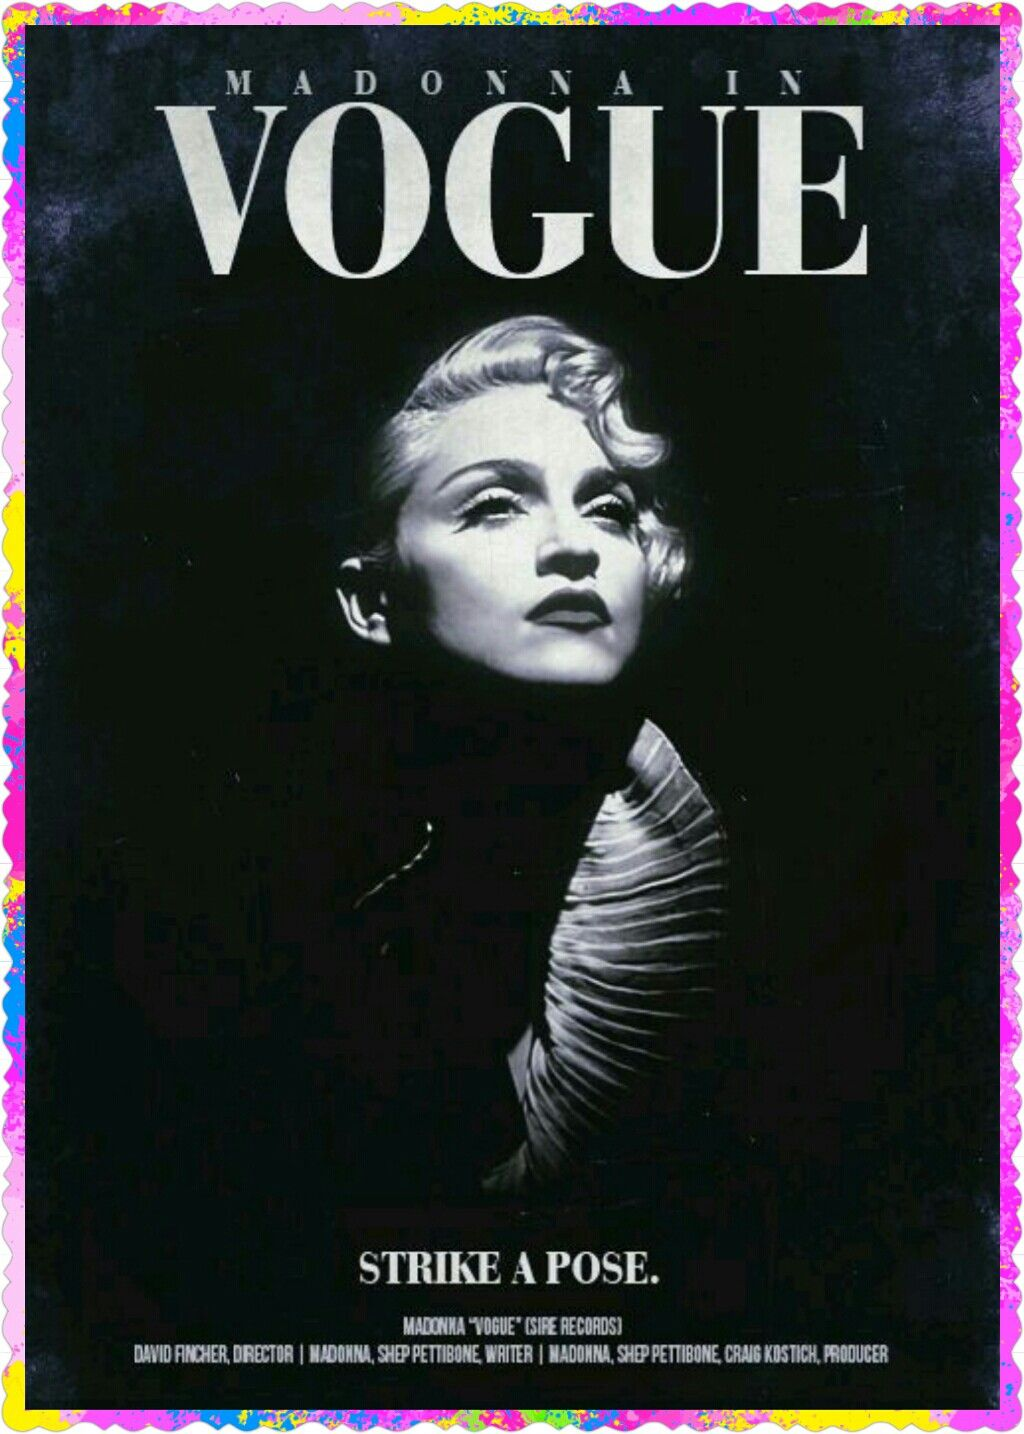 pin by namrata on madonna madonna madonna vogue madonna 80s